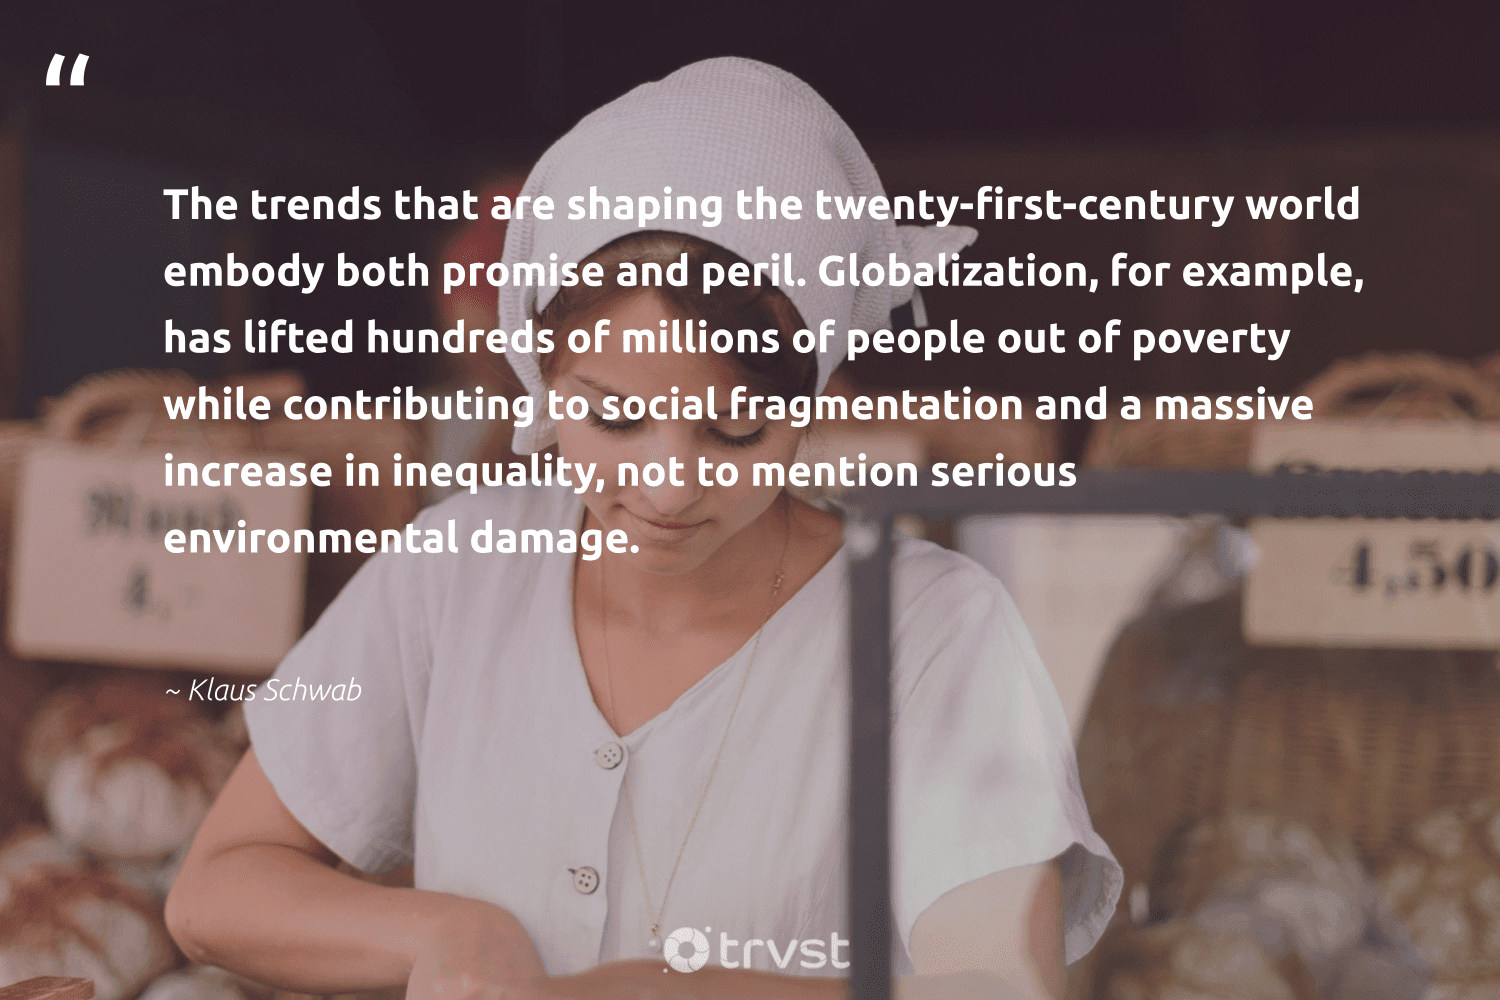 """""""The trends that are shaping the twenty-first-century world embody both promise and peril. Globalization, for example, has lifted hundreds of millions of people out of poverty while contributing to social fragmentation and a massive increase in inequality, not to mention serious environmental damage.""""  - Klaus Schwab #trvst #quotes #environmental #poverty #endpoverty #giveback #equalopportunity #socialchange #socialgood #makeadifference #ecoconscious #weareallone"""